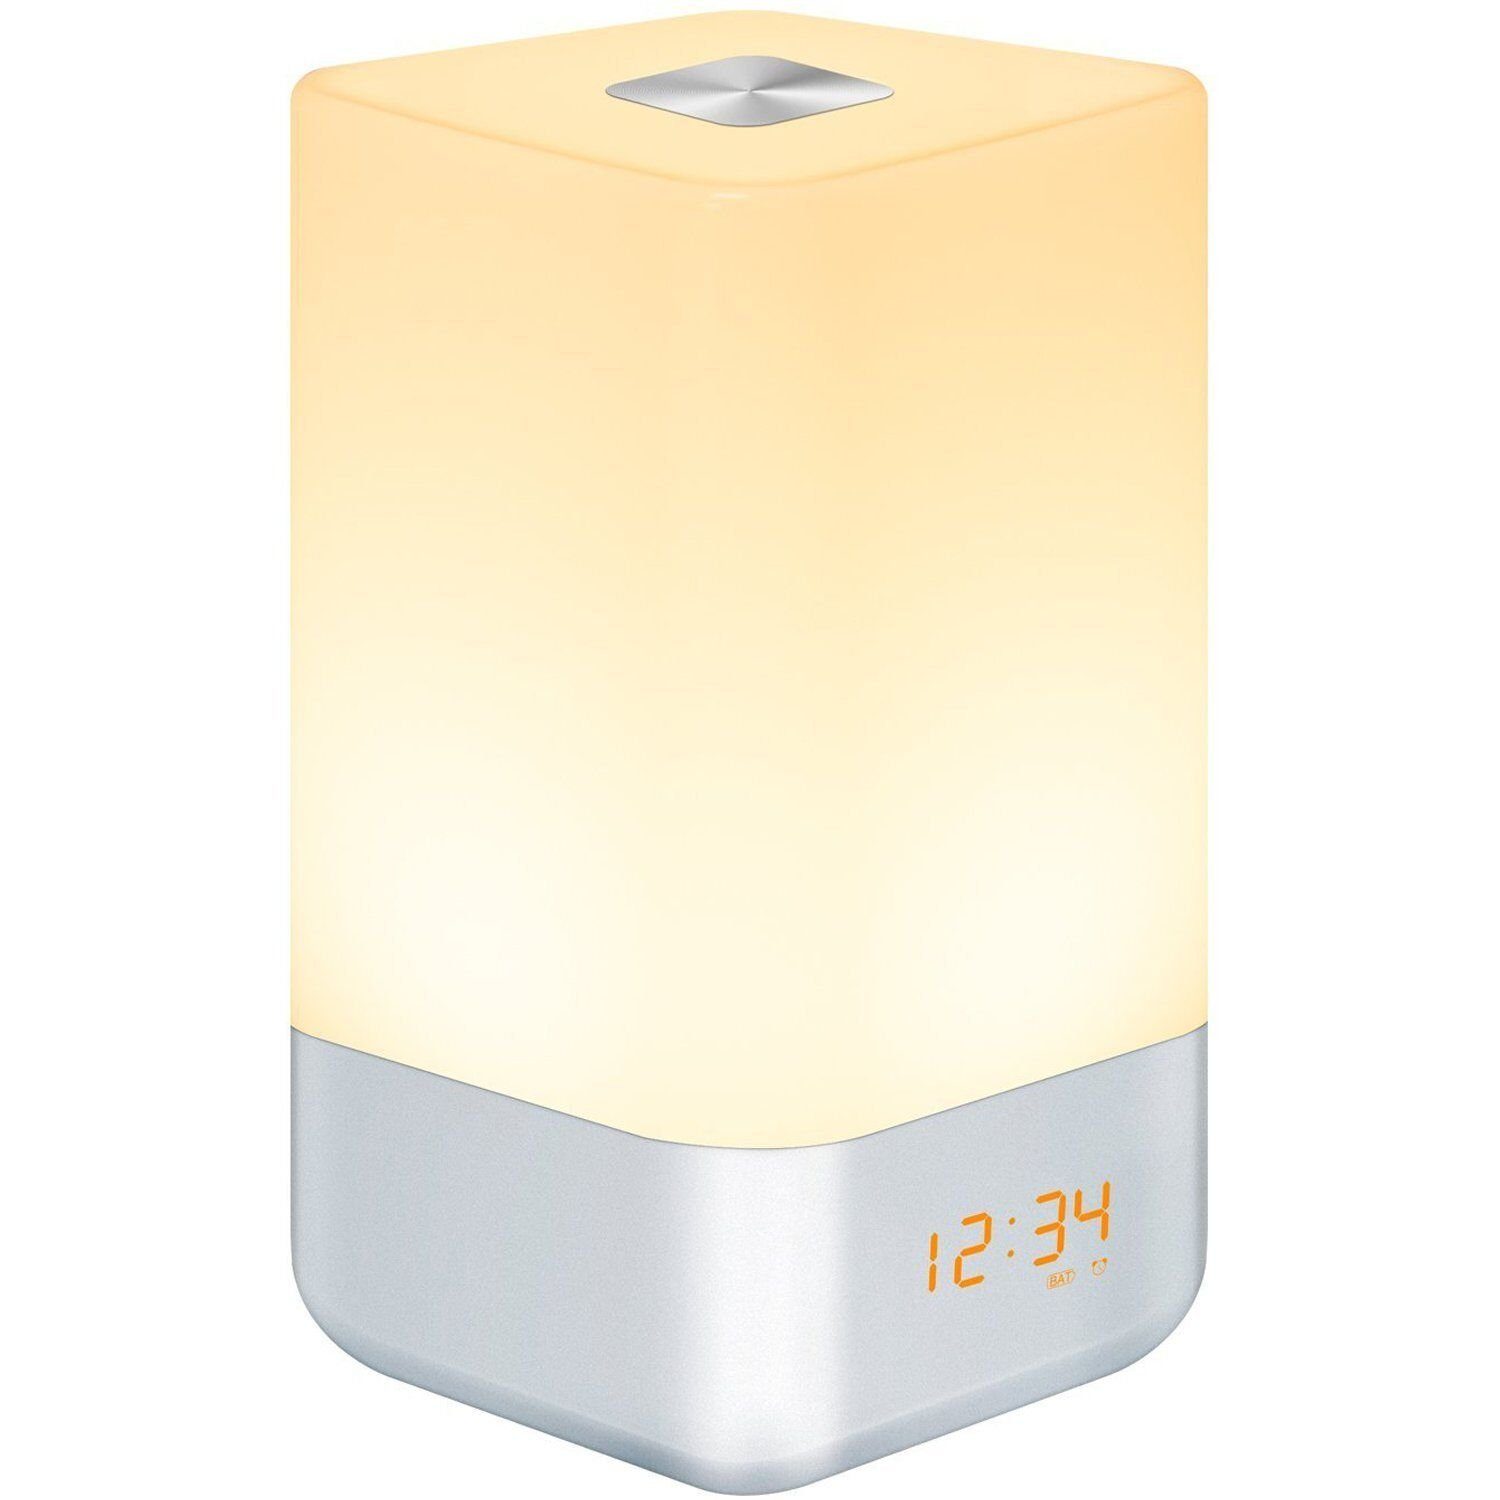 HogarTech Luz de Despertar Wake Up Light Làmpara de Noche Simulación Sunrise